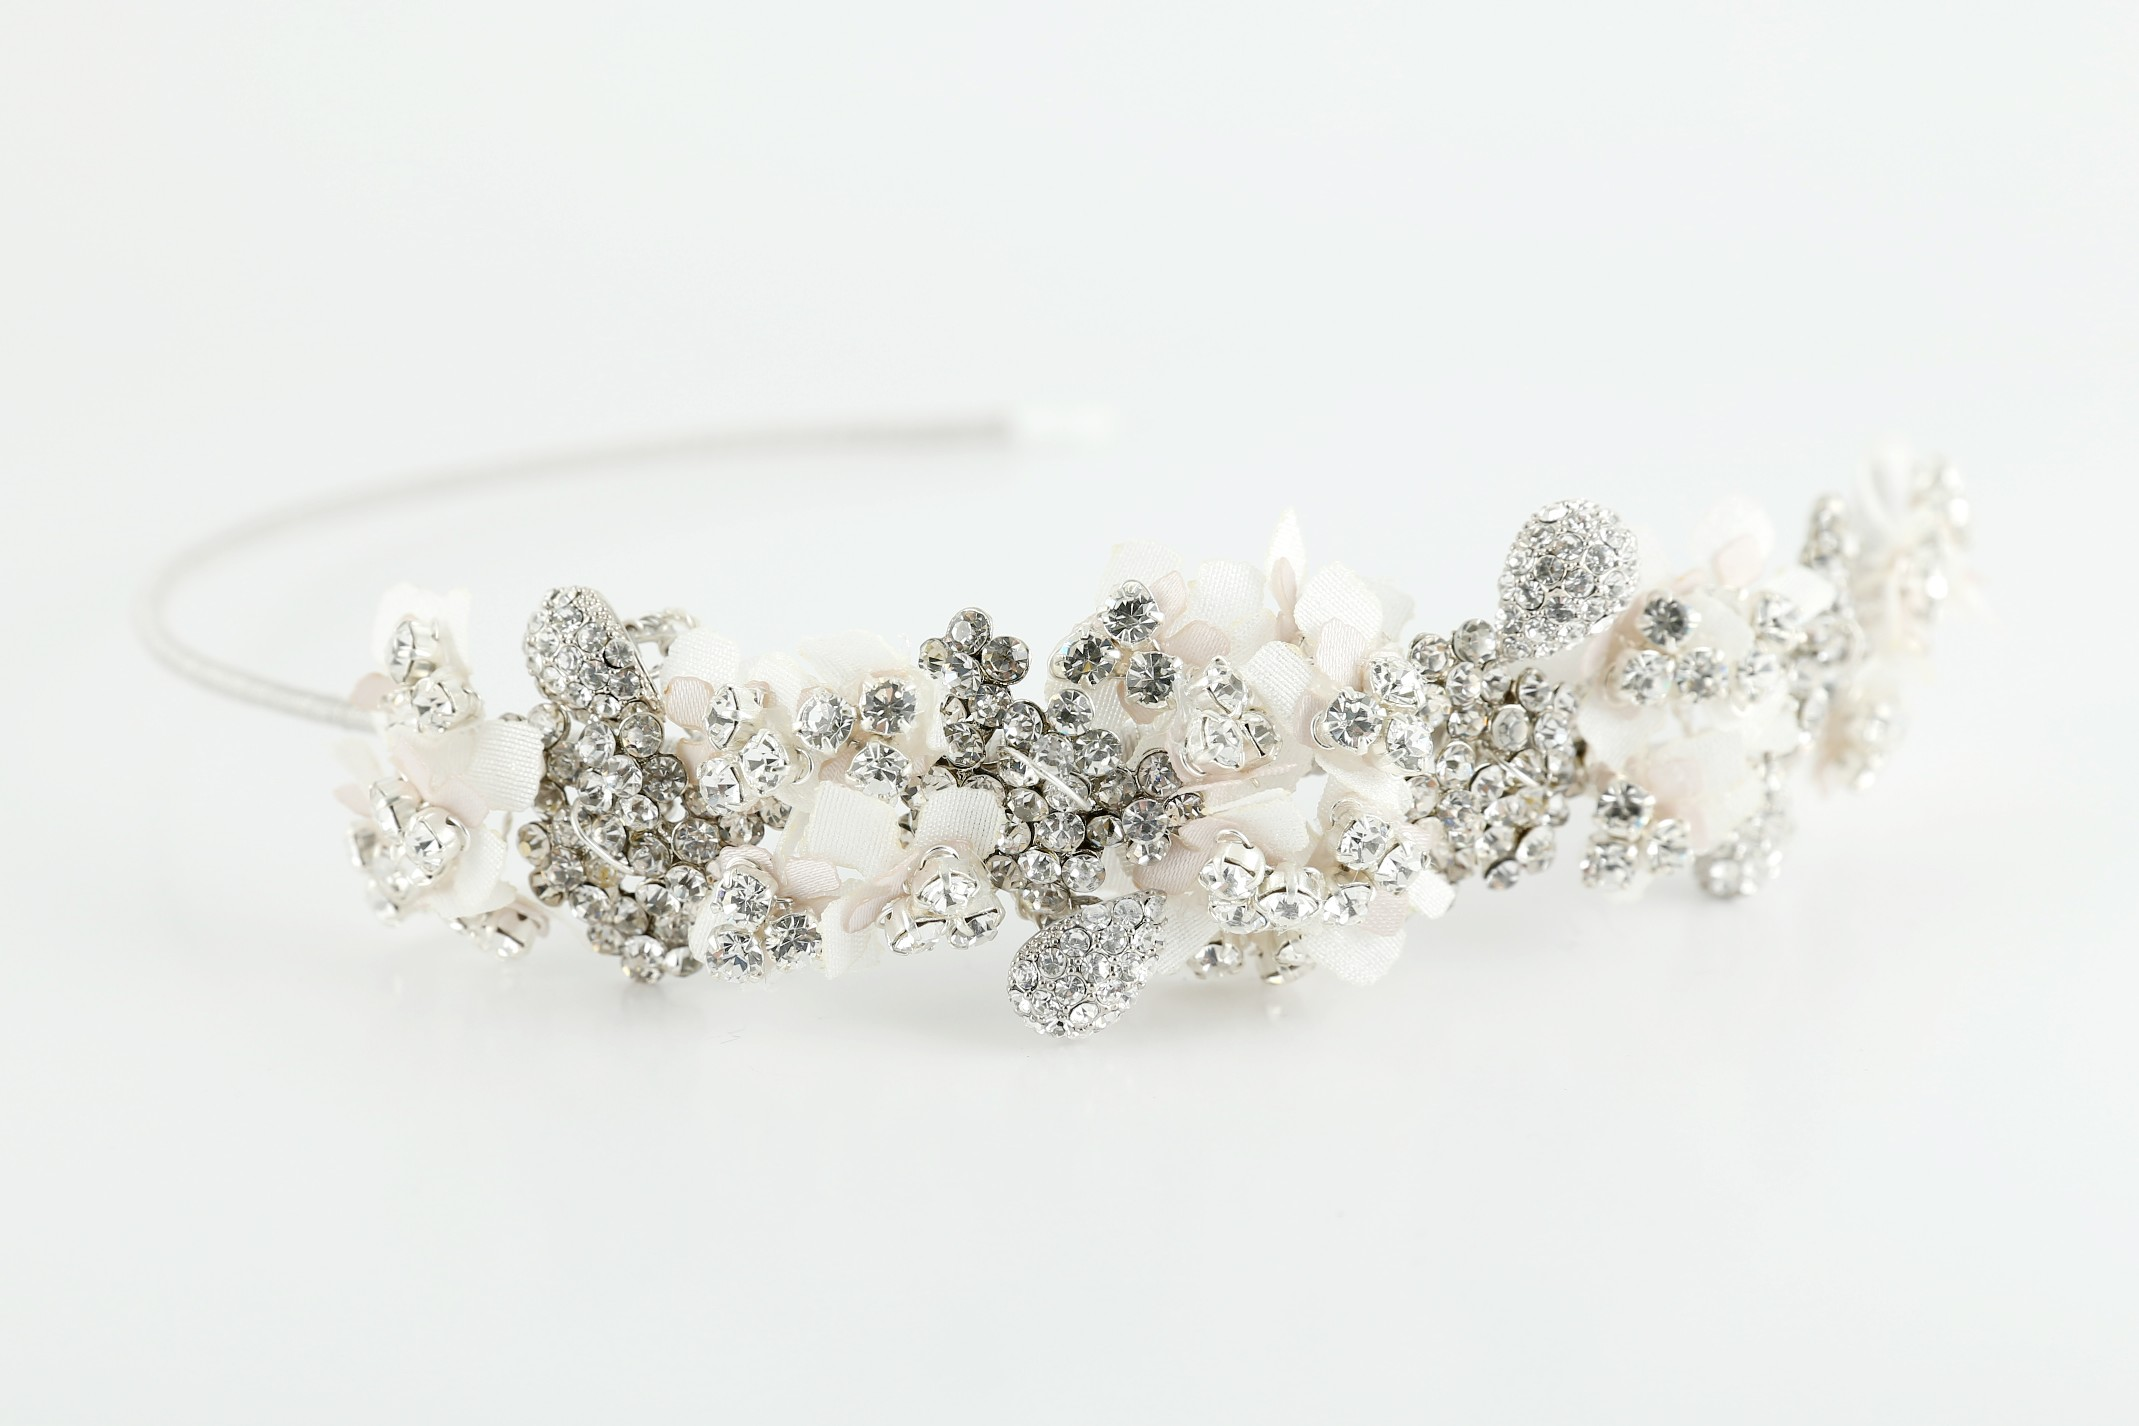 We wedding headpiece jewellery - We Stock Veils And Tiaras And A Small Selection Of Wedding Jewellery From Richards Designs La Sposa And Ivory Co